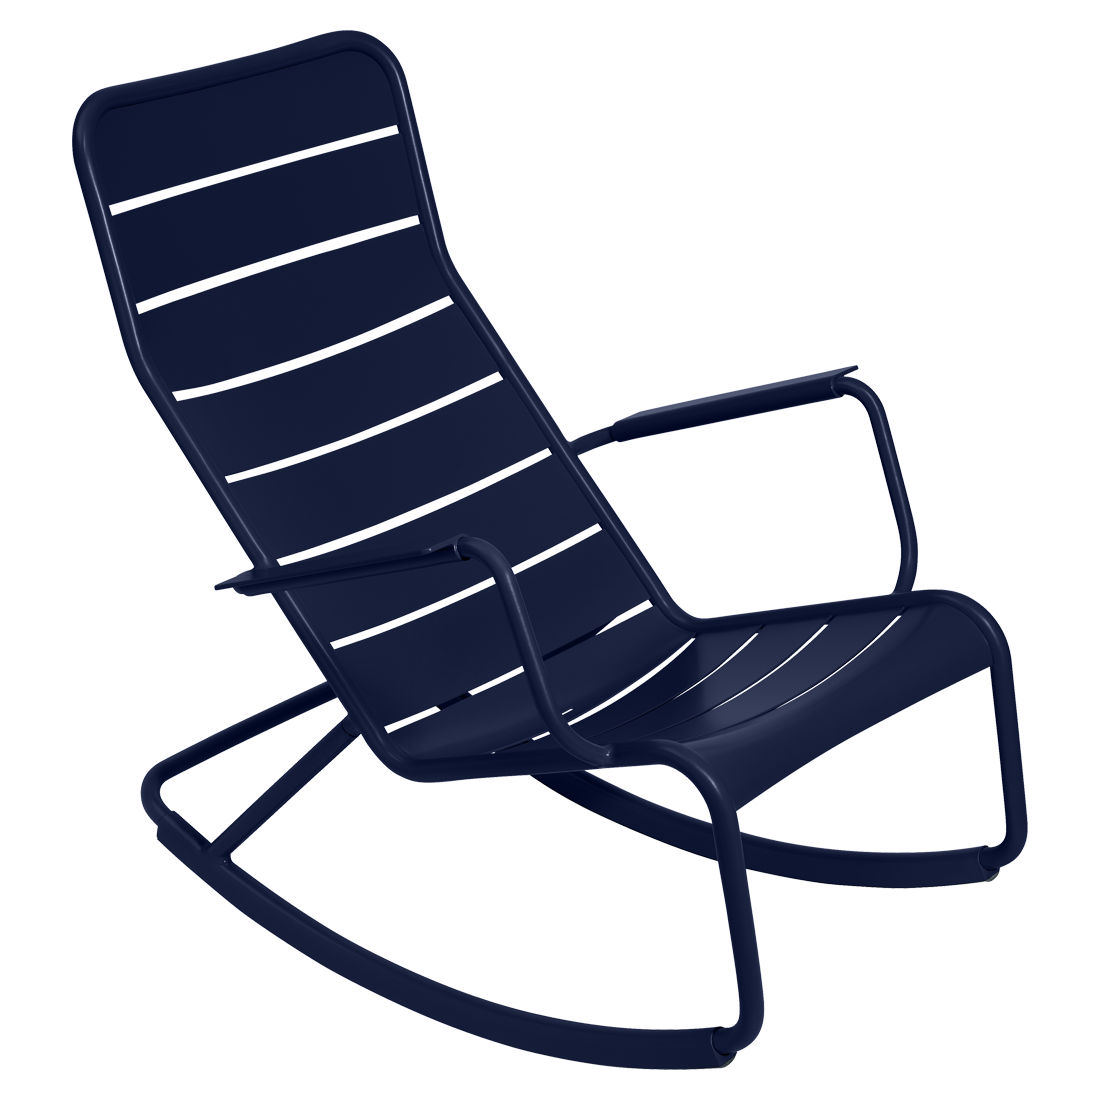 fauteuil de jardin, rocking chair metal, salon de jardin, rocking chair bleu